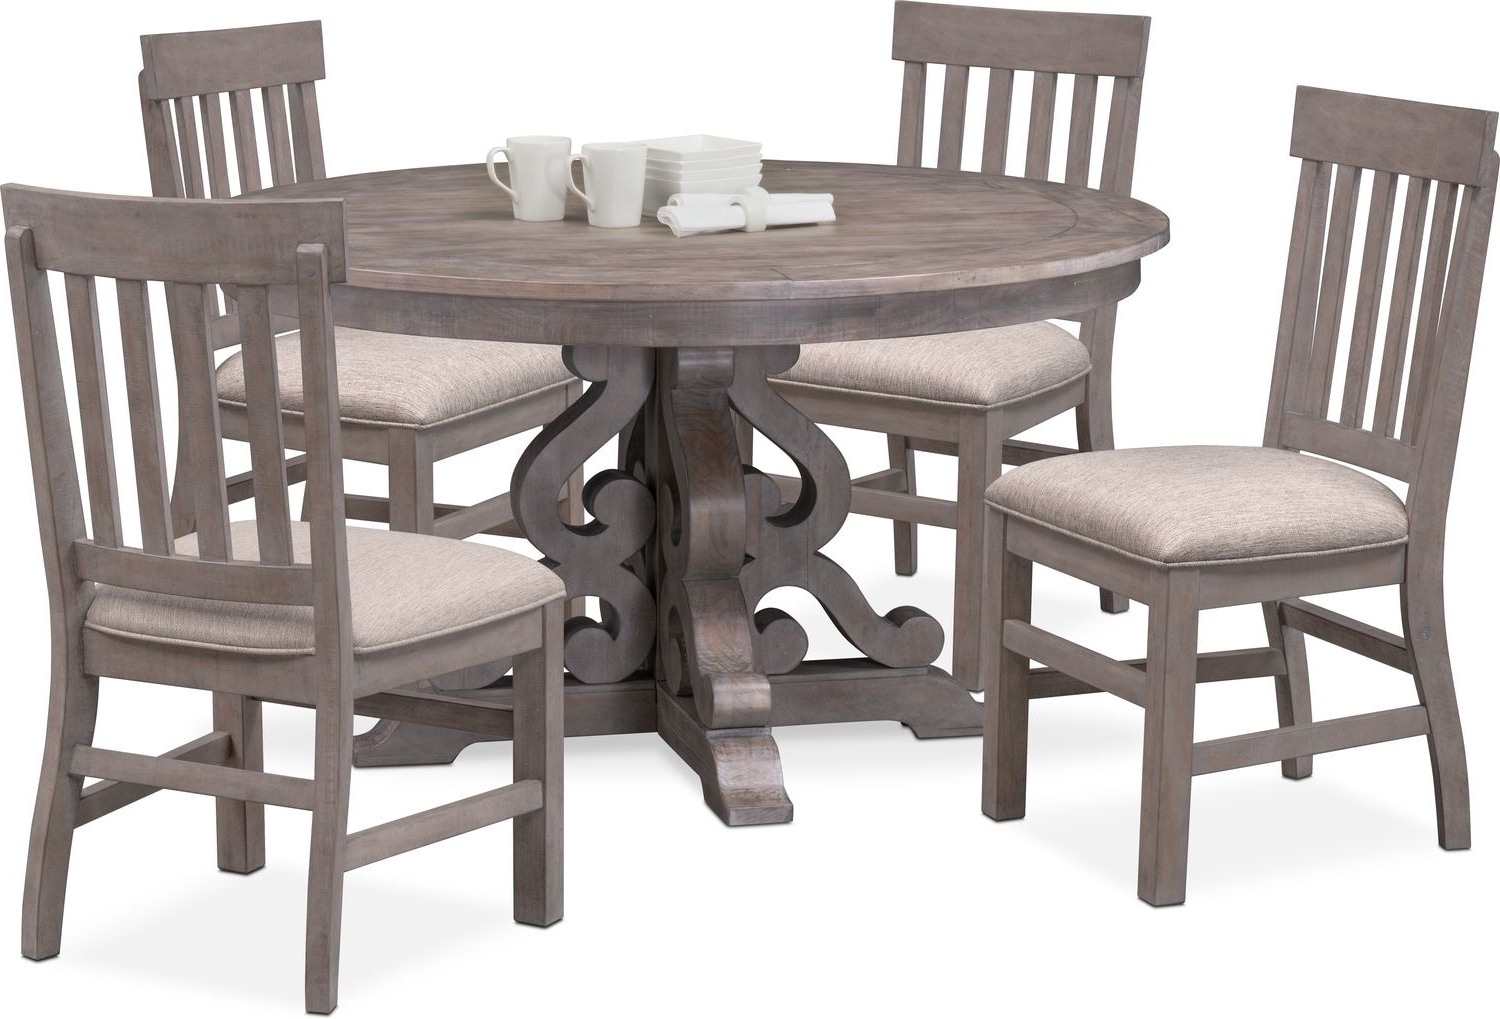 Well Liked Charthouse Round Dining Table And 4 Side Chairs – Gray (View 24 of 25)